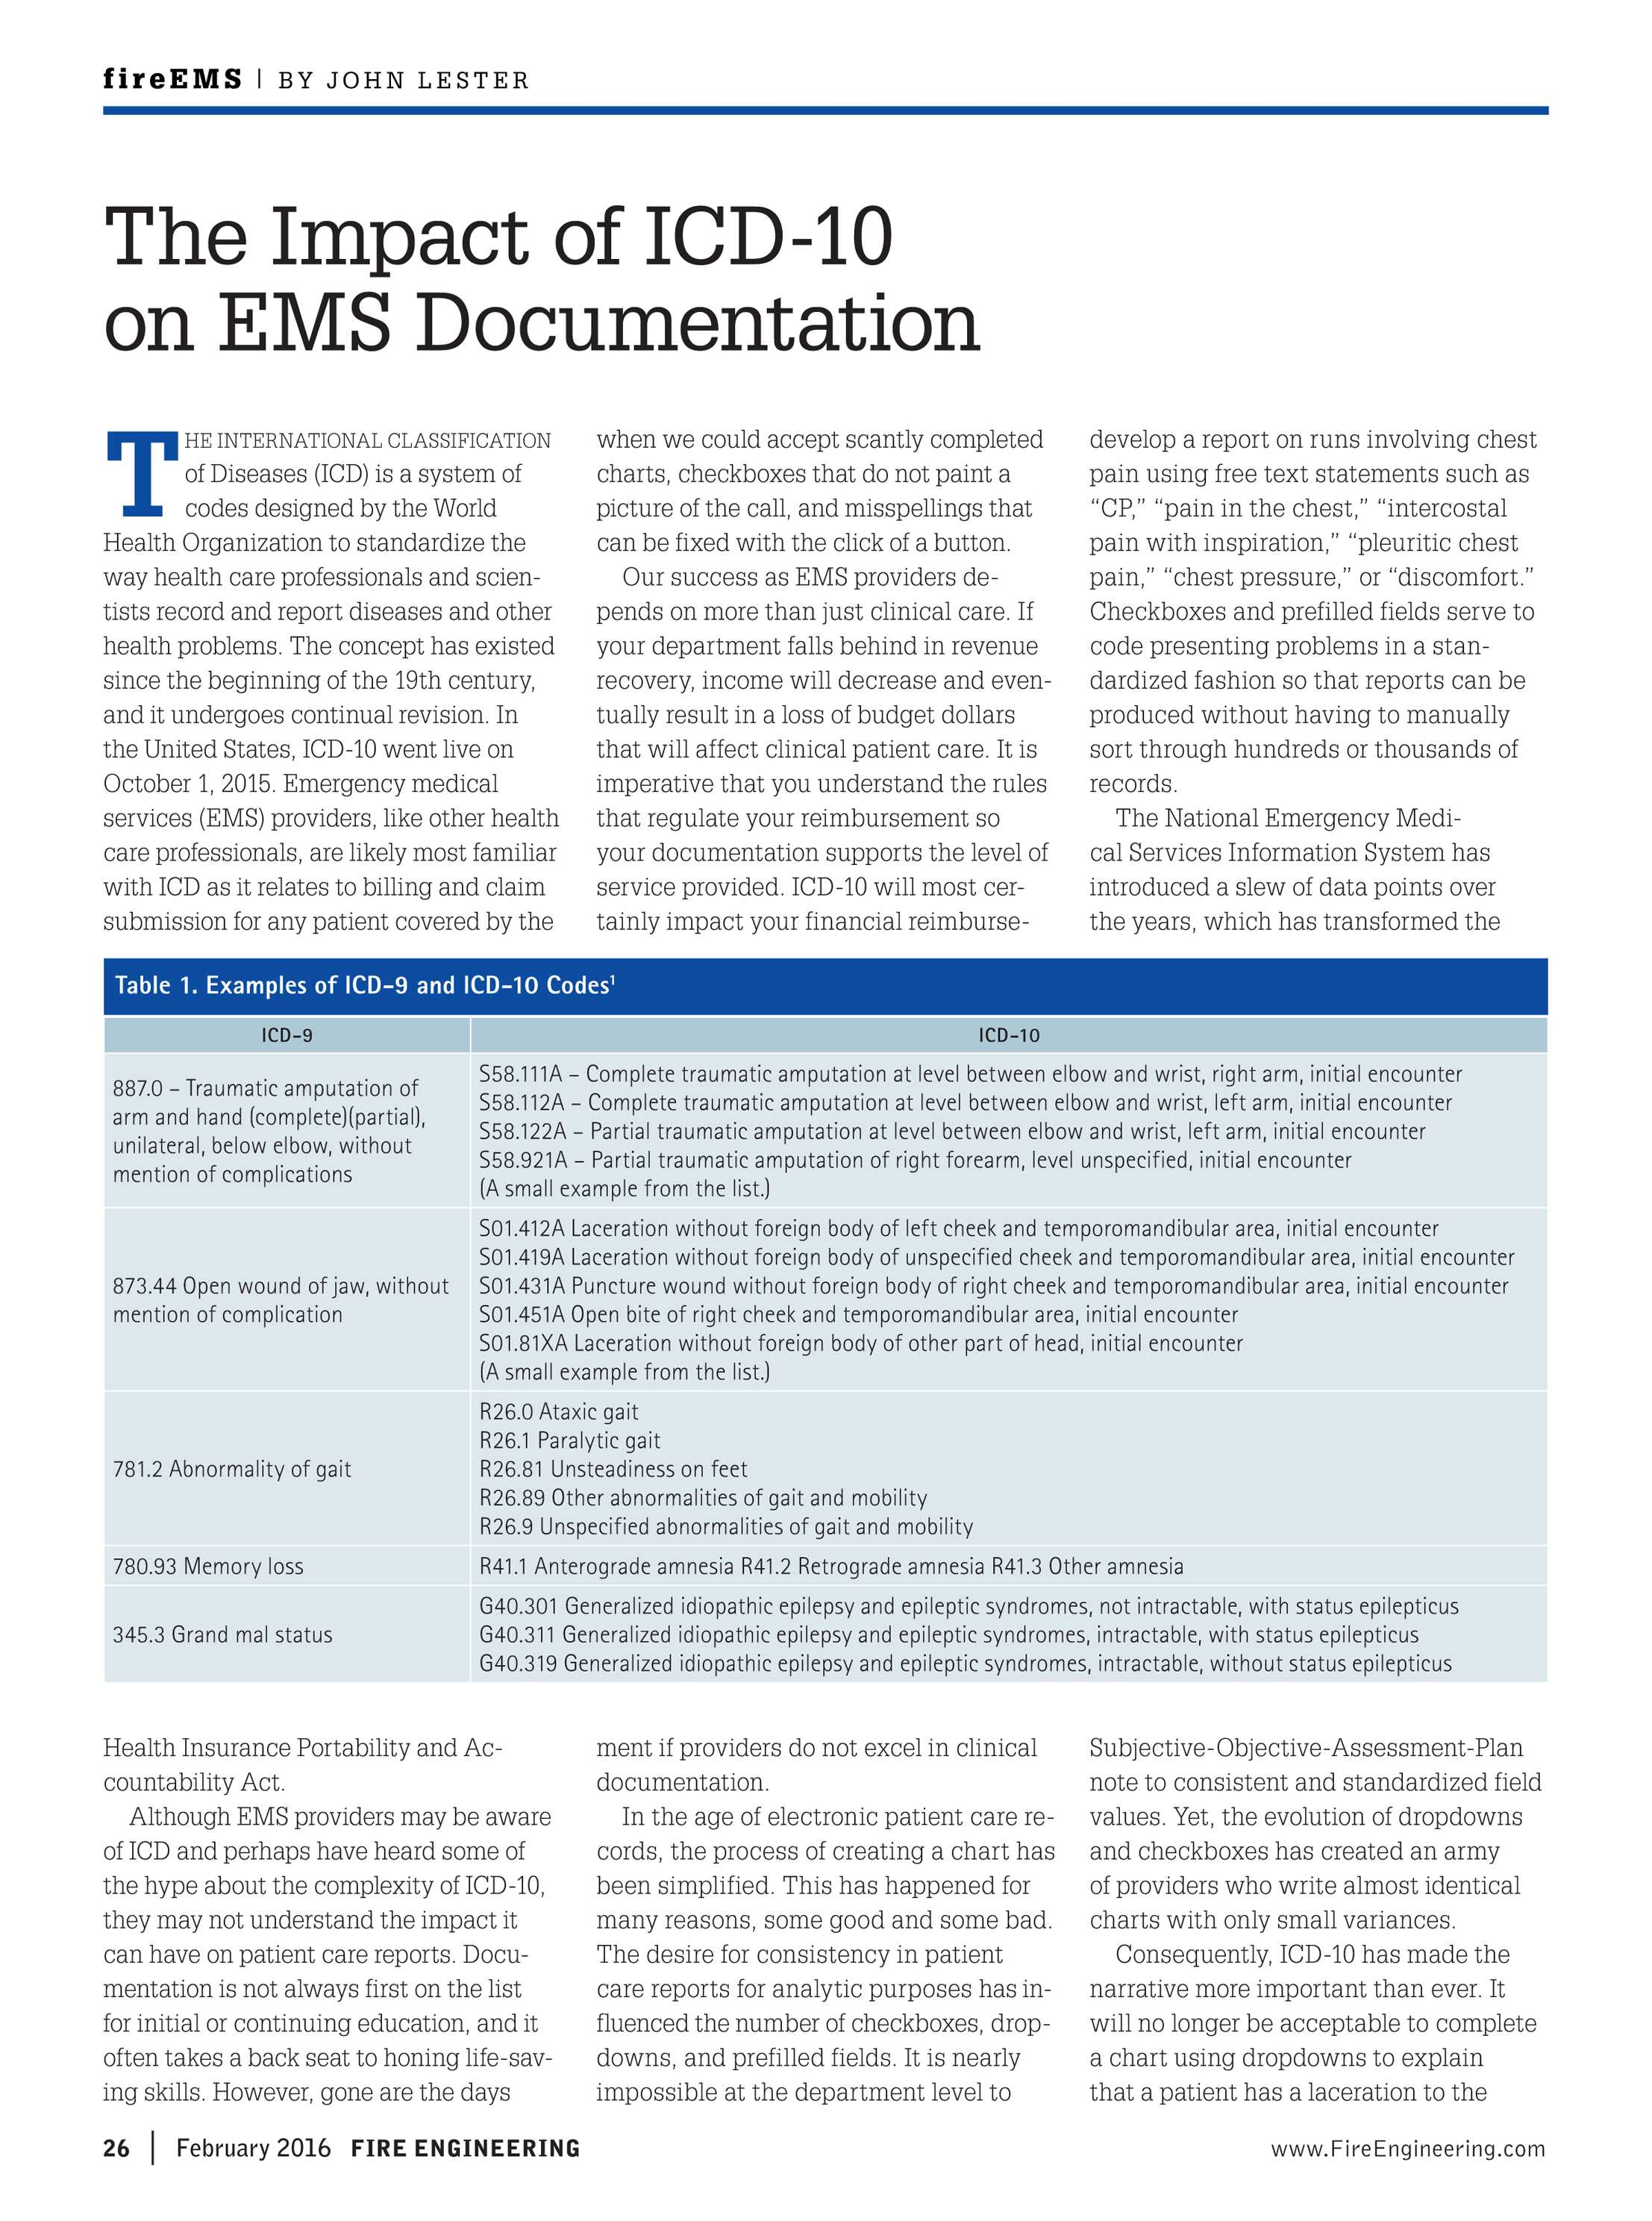 Fire Engineering - February 2016 - page 26